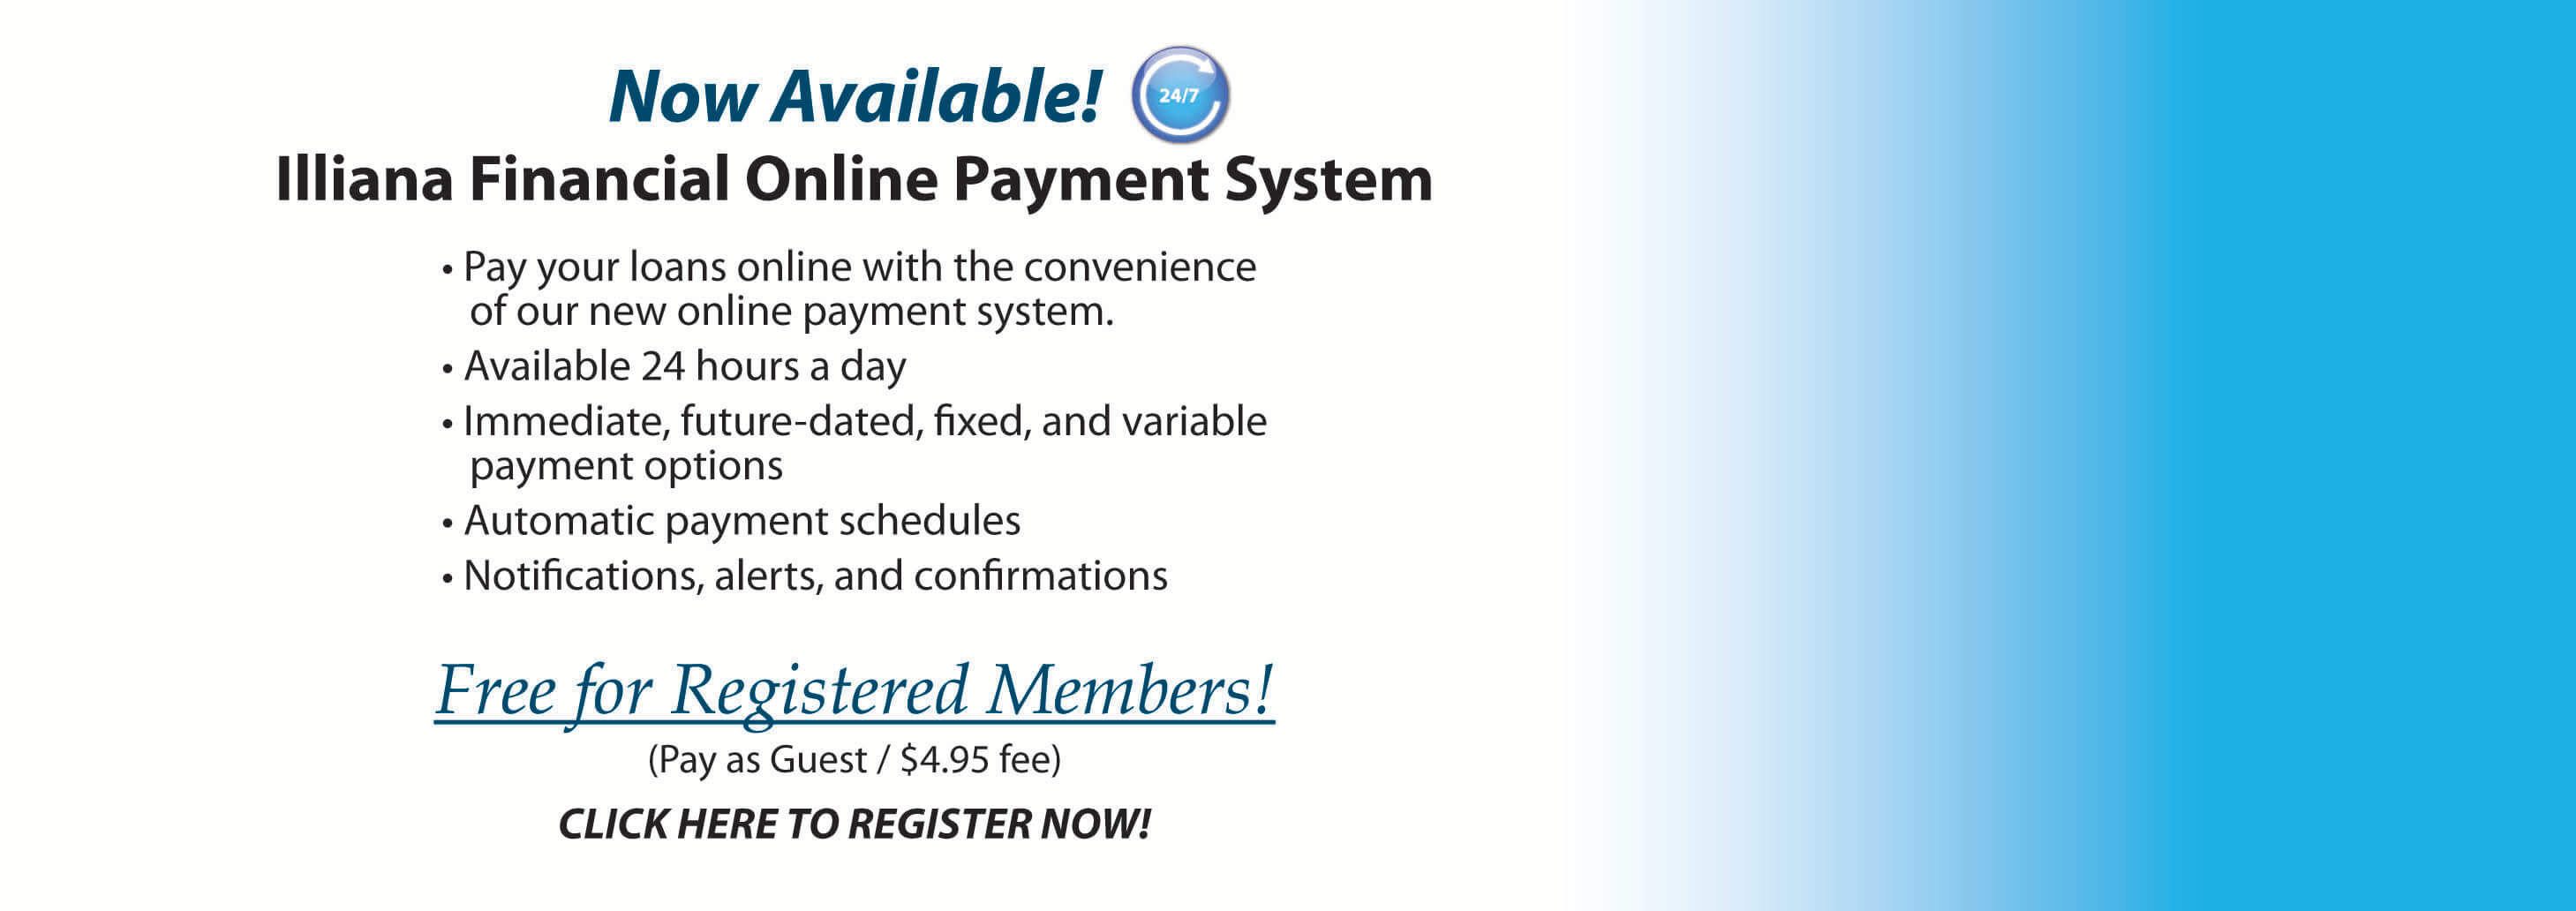 Online Loan Payment System now available